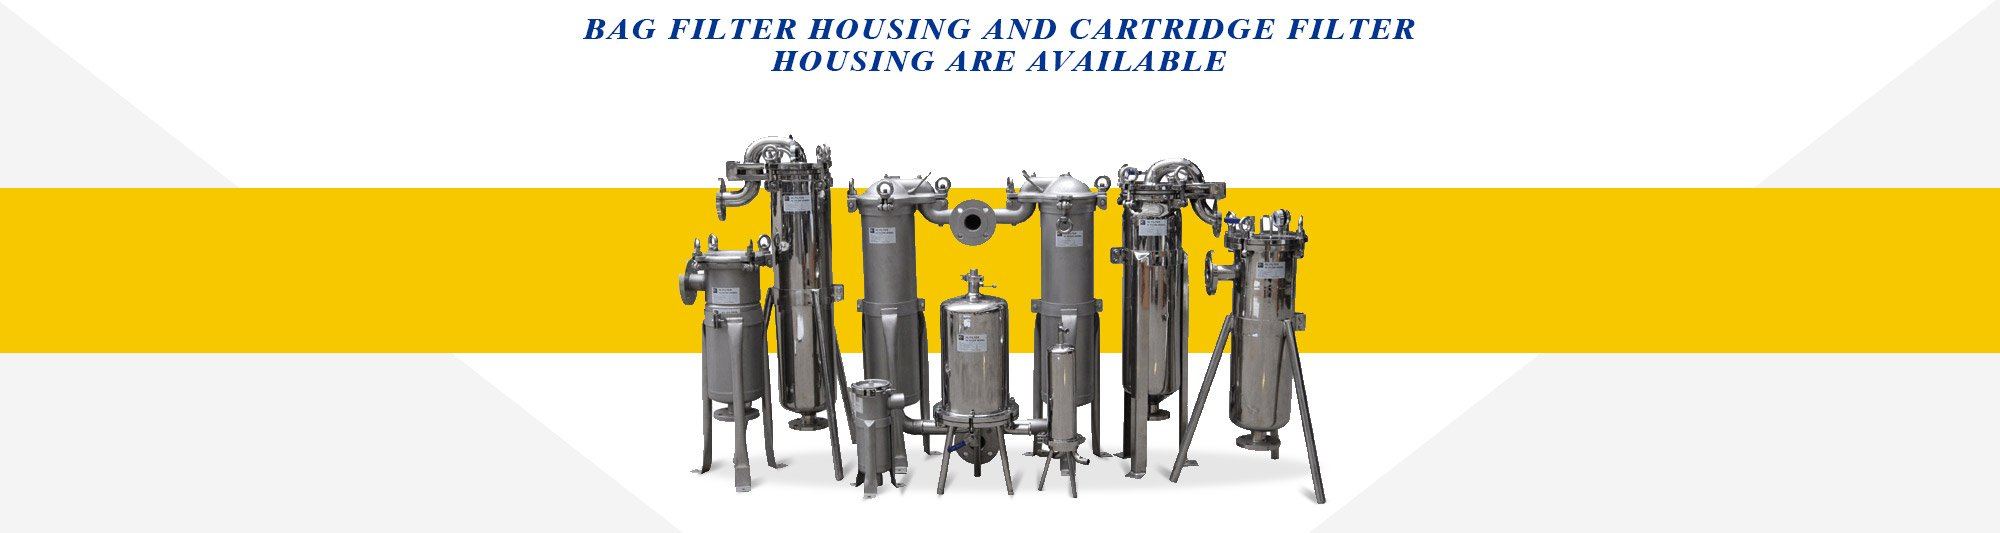 bag filter housing and cartridge filter housing are available